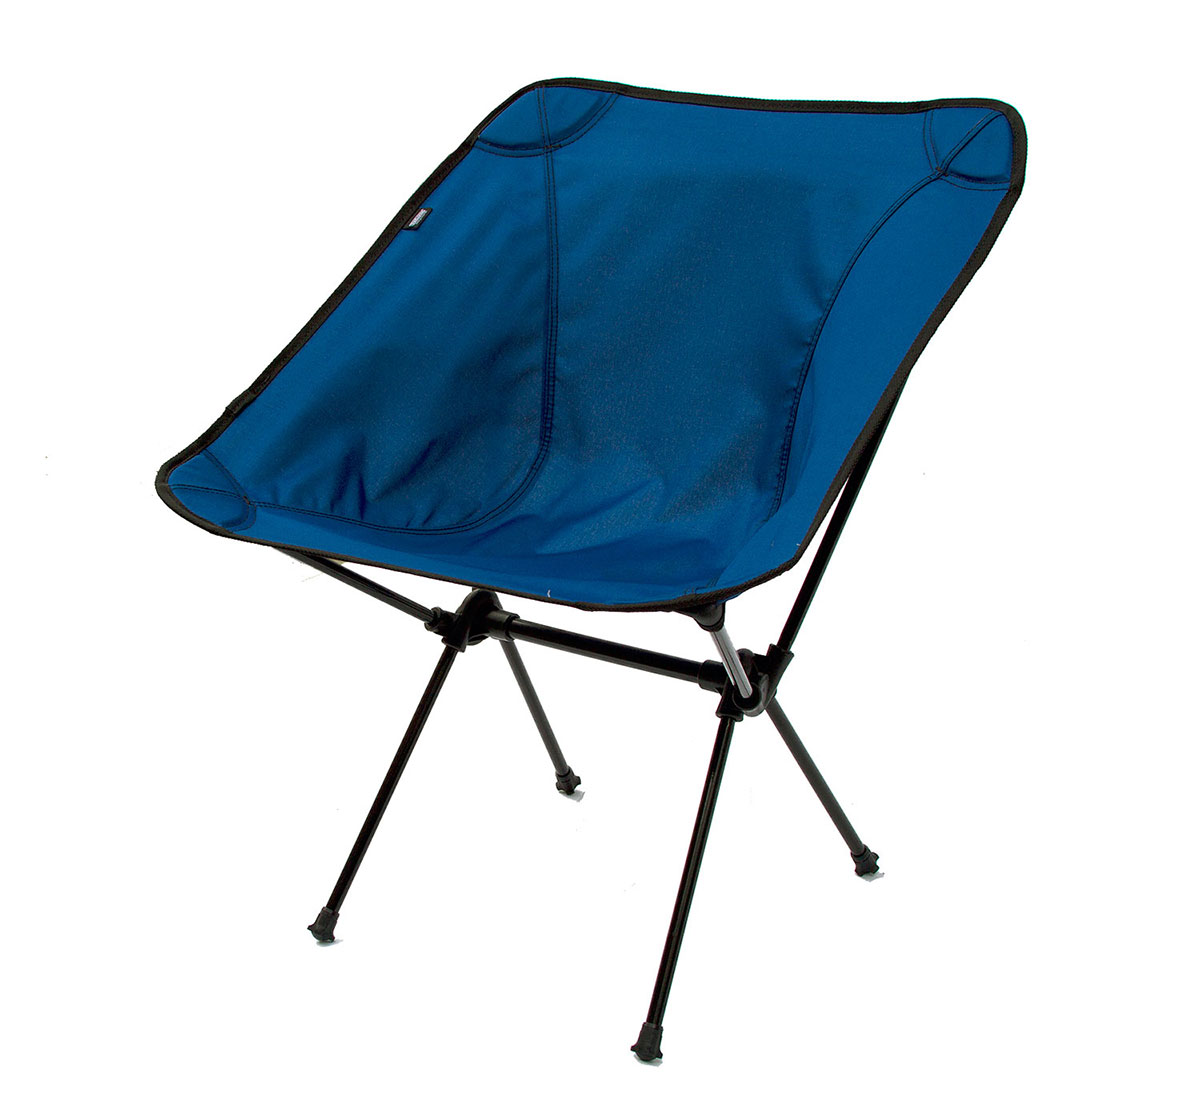 The Joey C Series Compact Camping Chair by Travel Chair